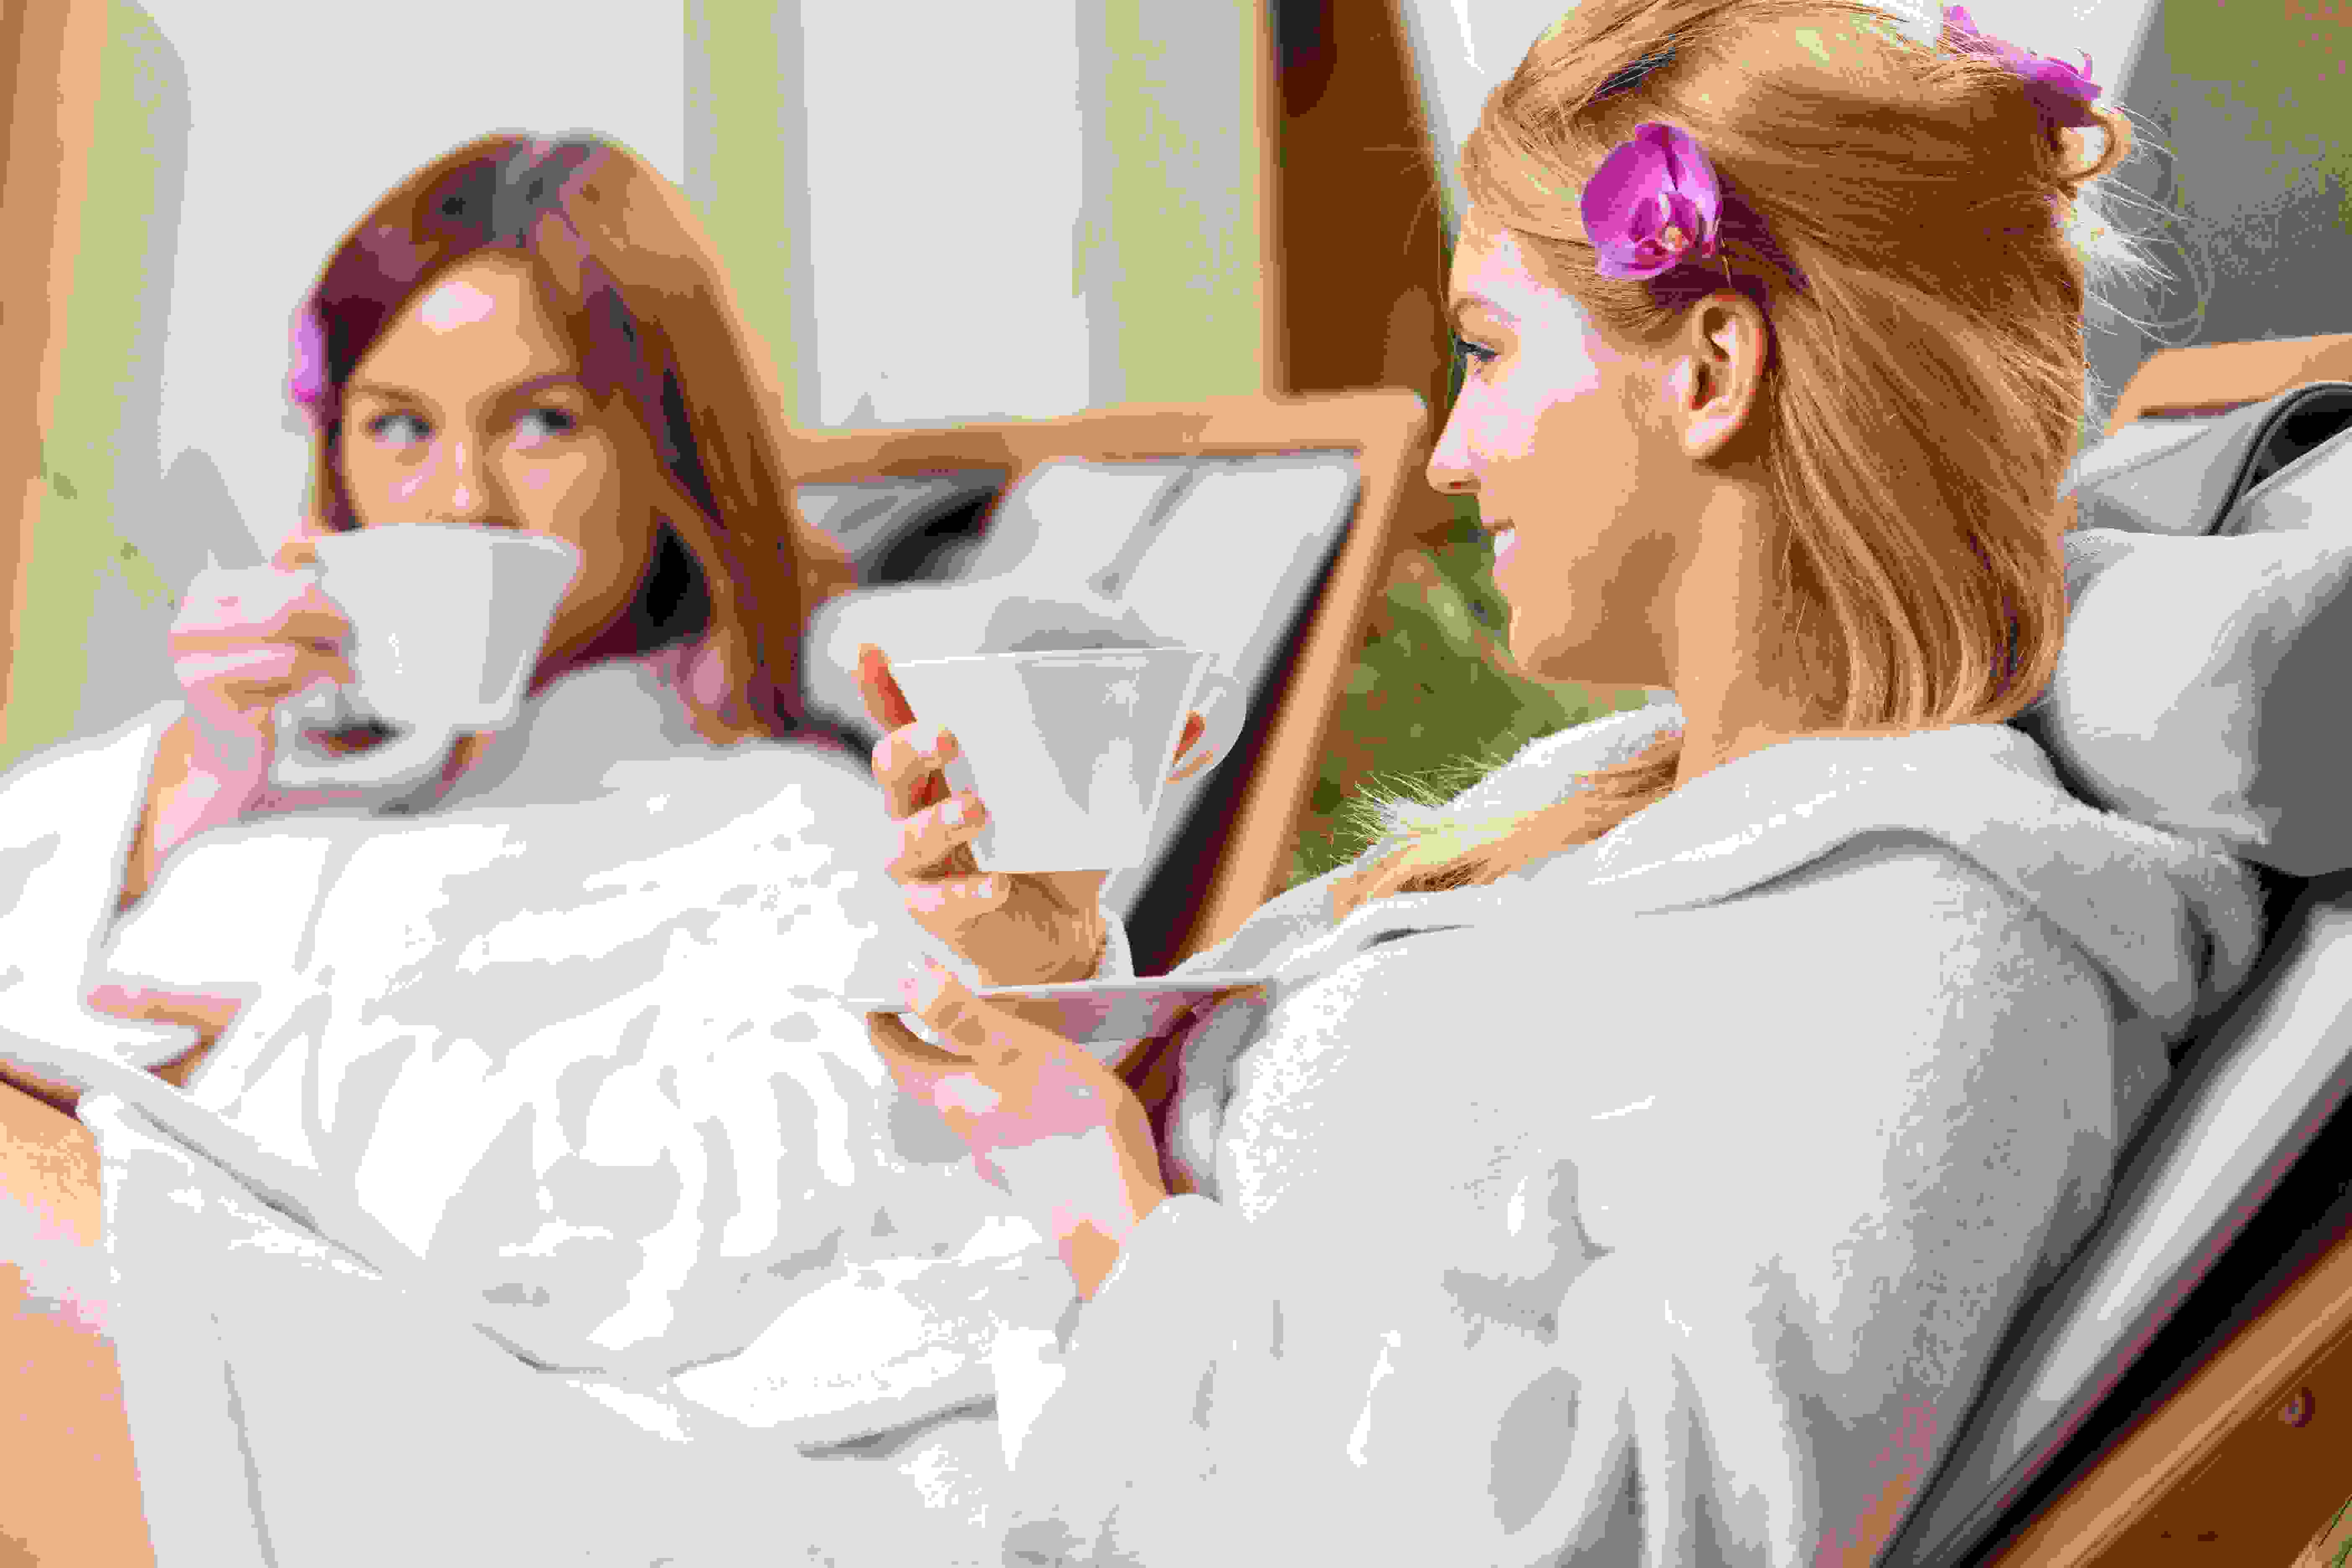 Ladies enjoying a cup of tea at the spa